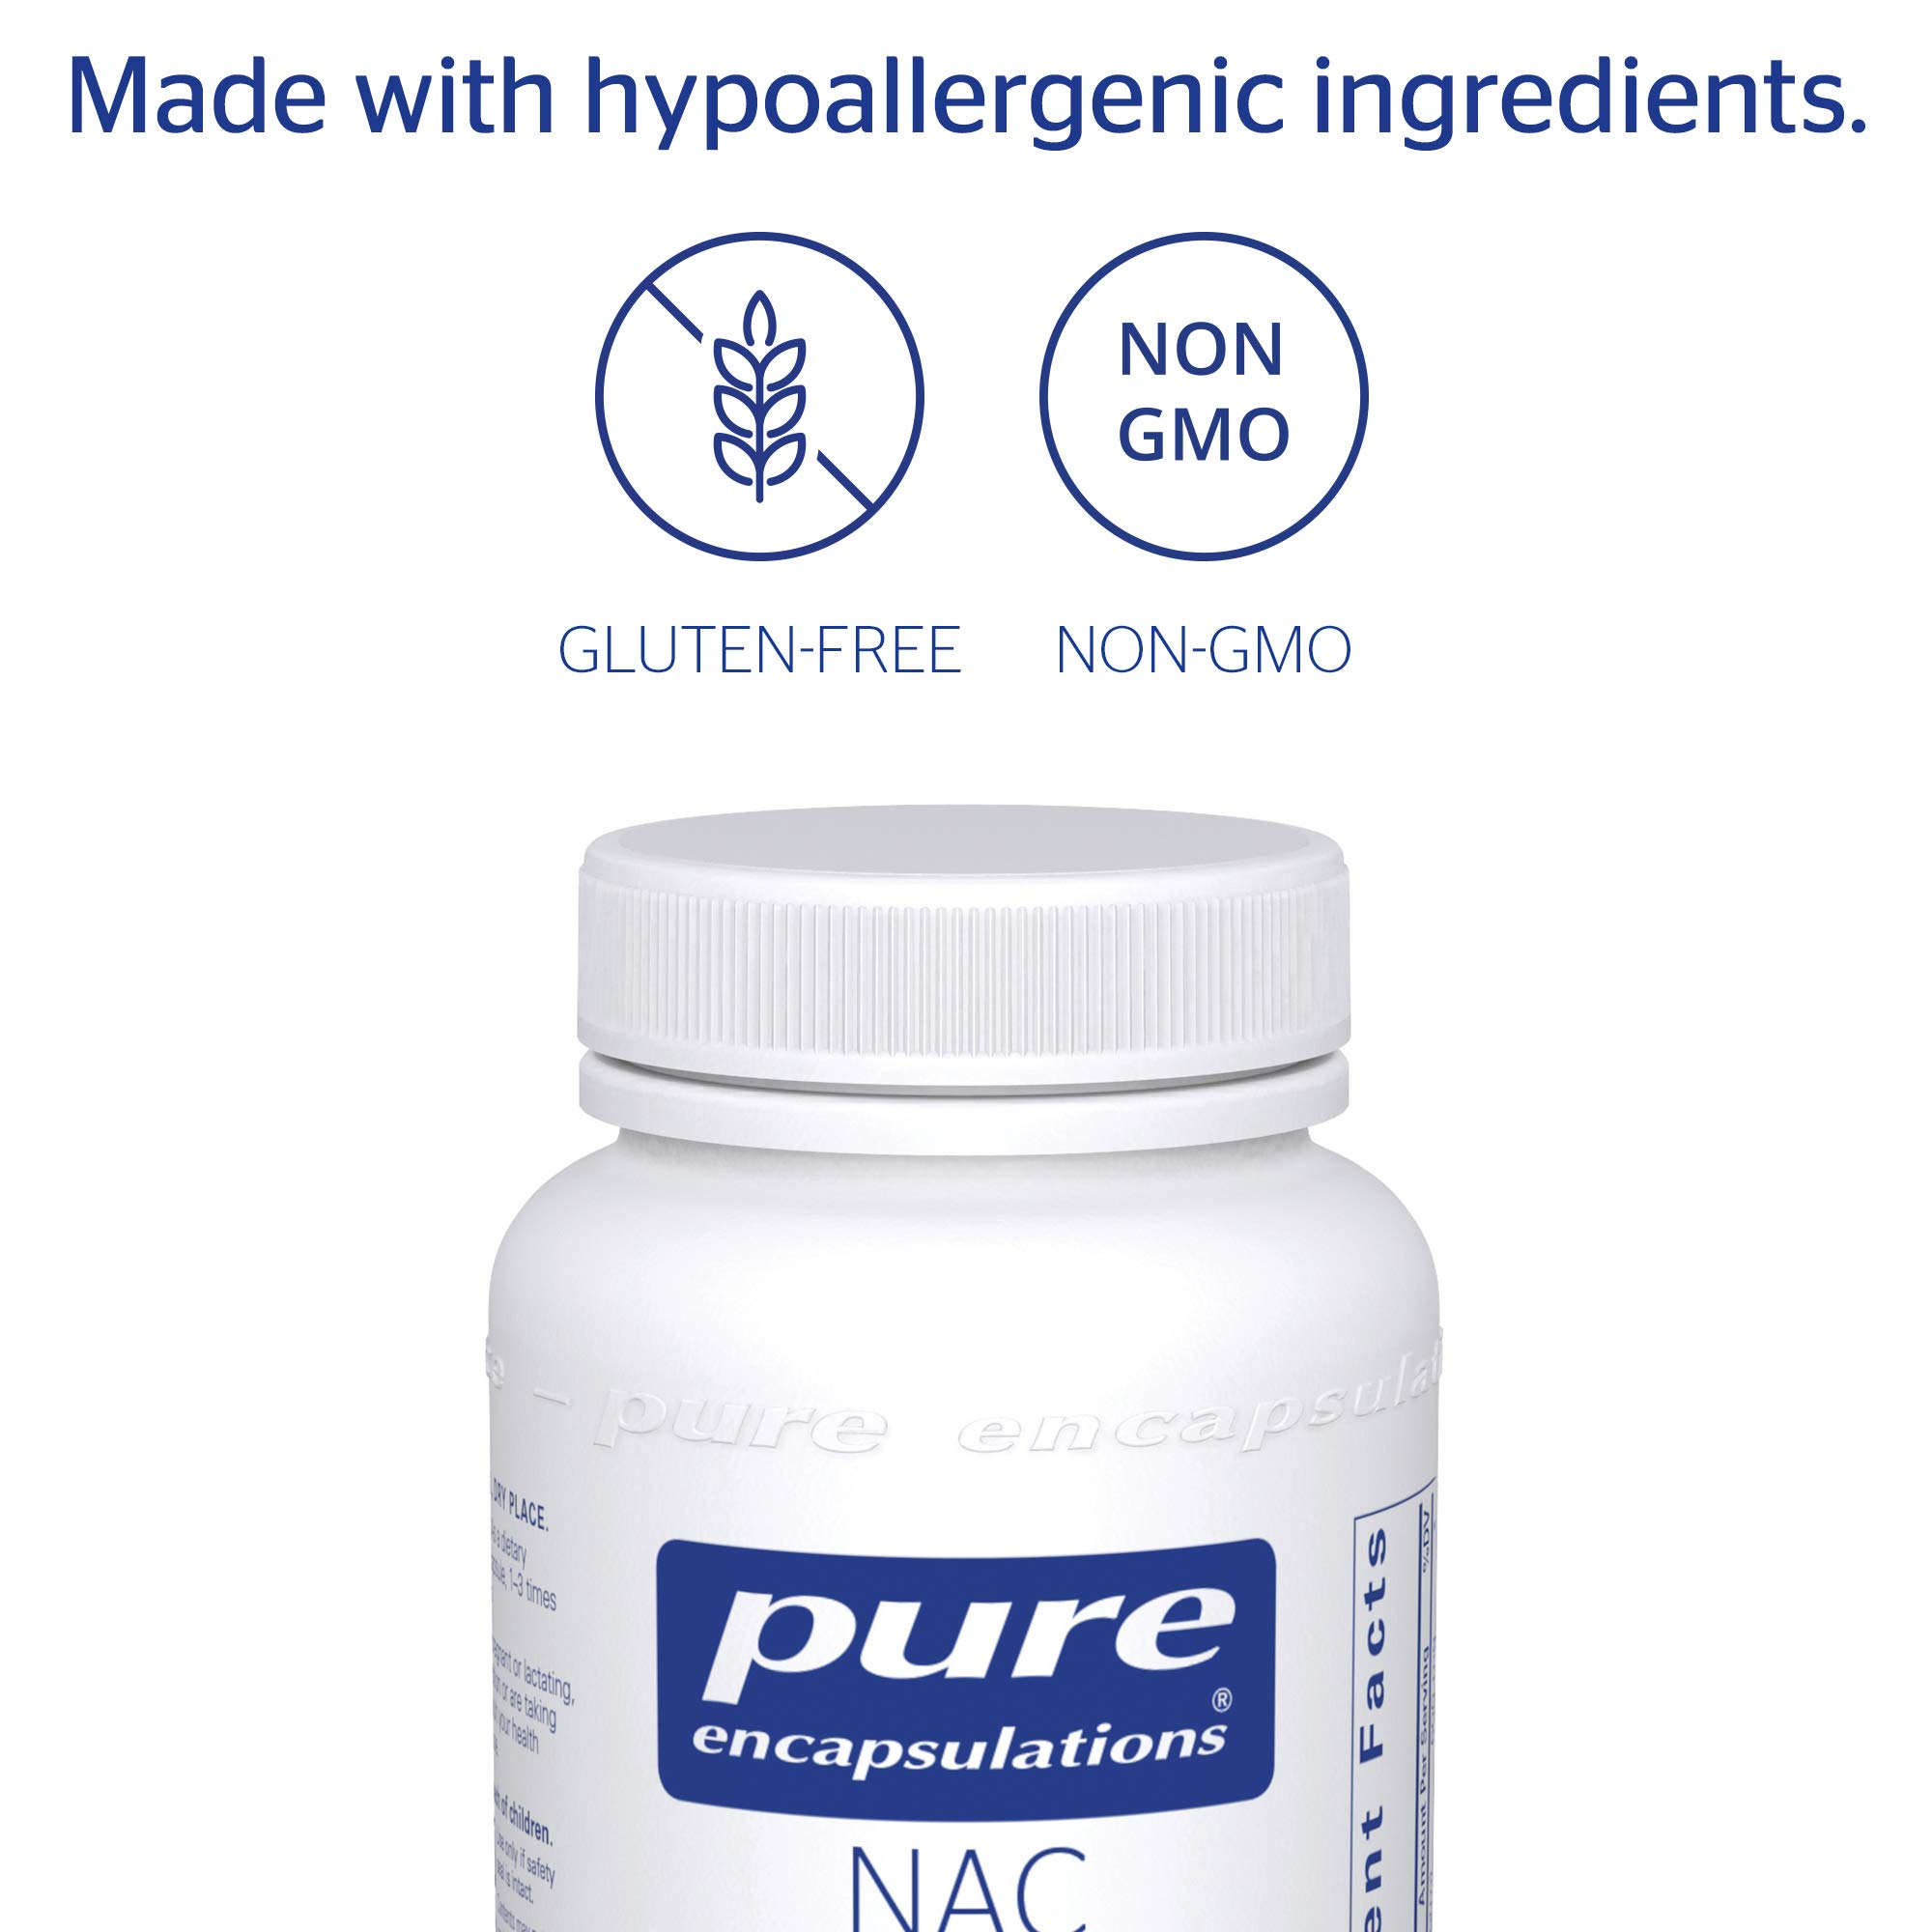 Pure Encapsulations - NAC (N-Acetyl-L-Cysteine) 600 mg - Amino Acids to Support Antioxidant Defense and Healthy Lung Tissue - 90 Capsules by Pure Encapsulations (Image #4)